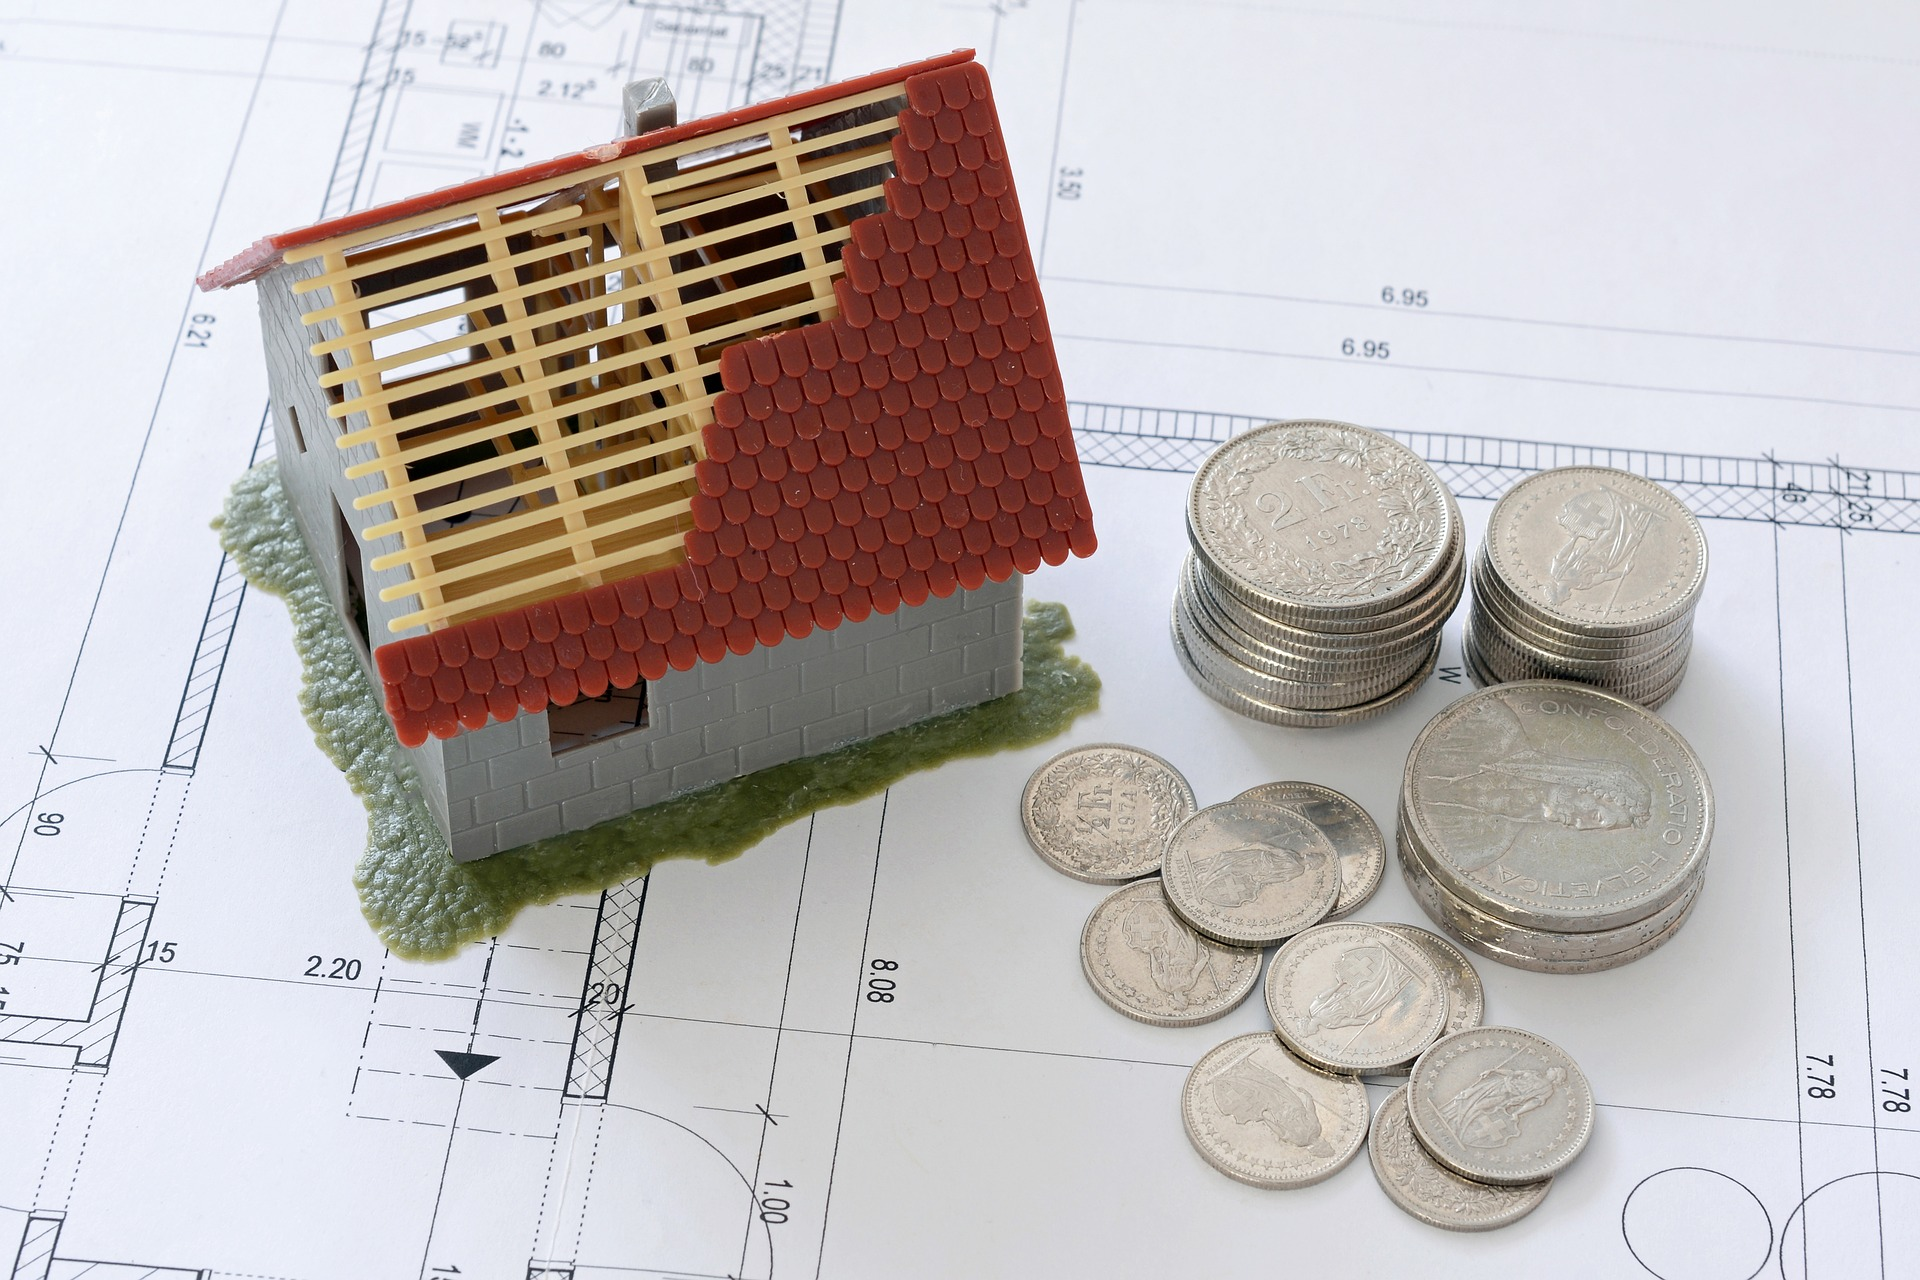 How Does A Mortgage Increase Your Credit Score?